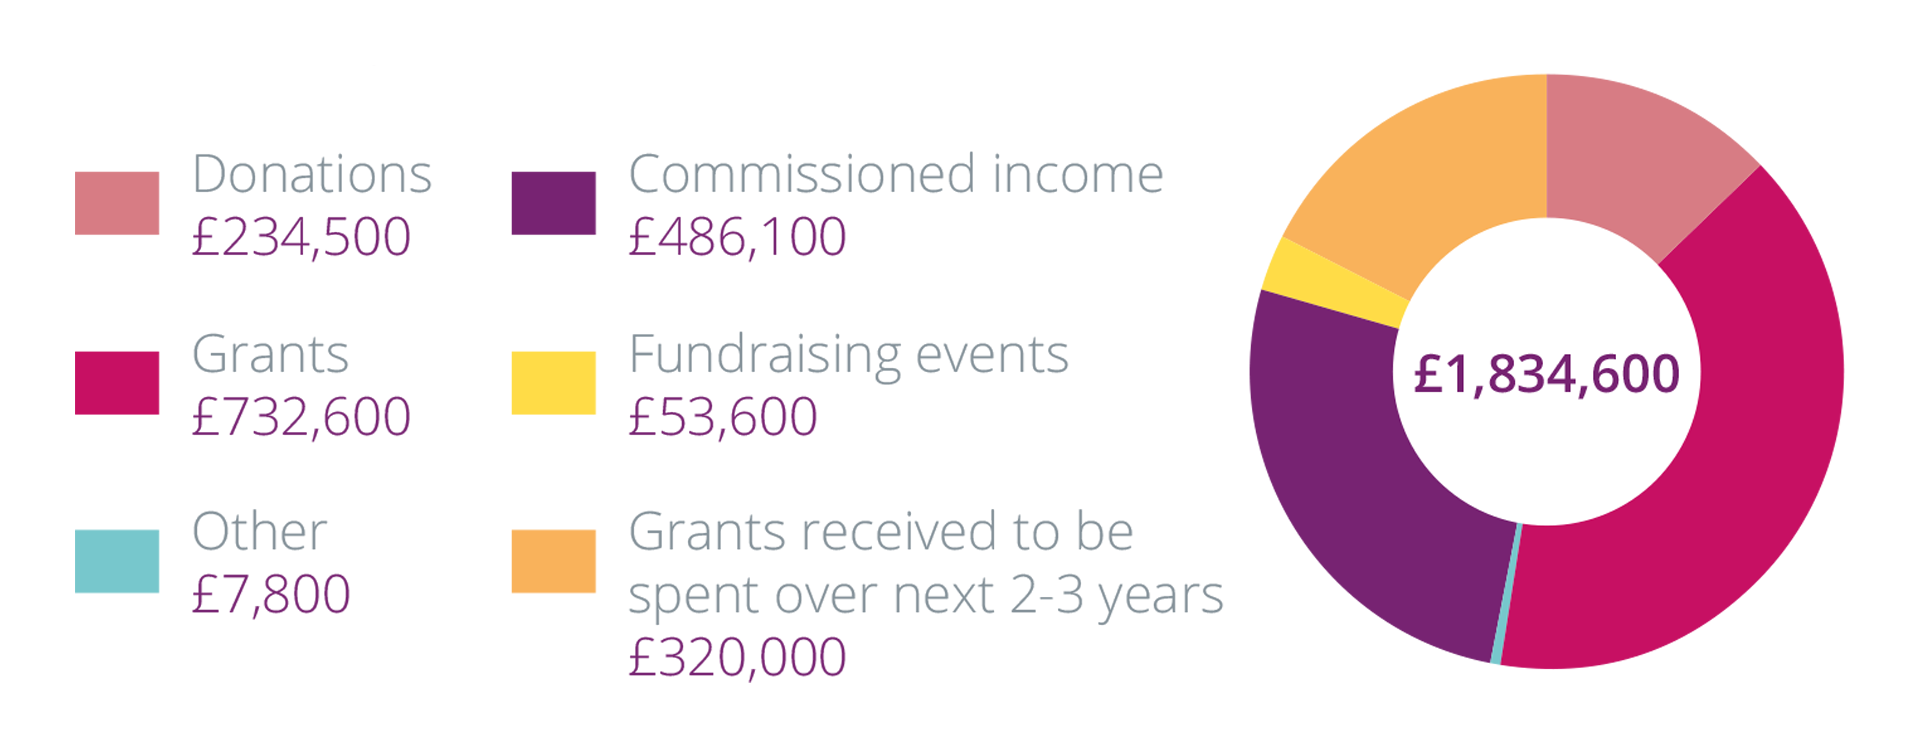 £1,834,600 was raised although £320,000 is to be spent specifically over the next 2-3 years